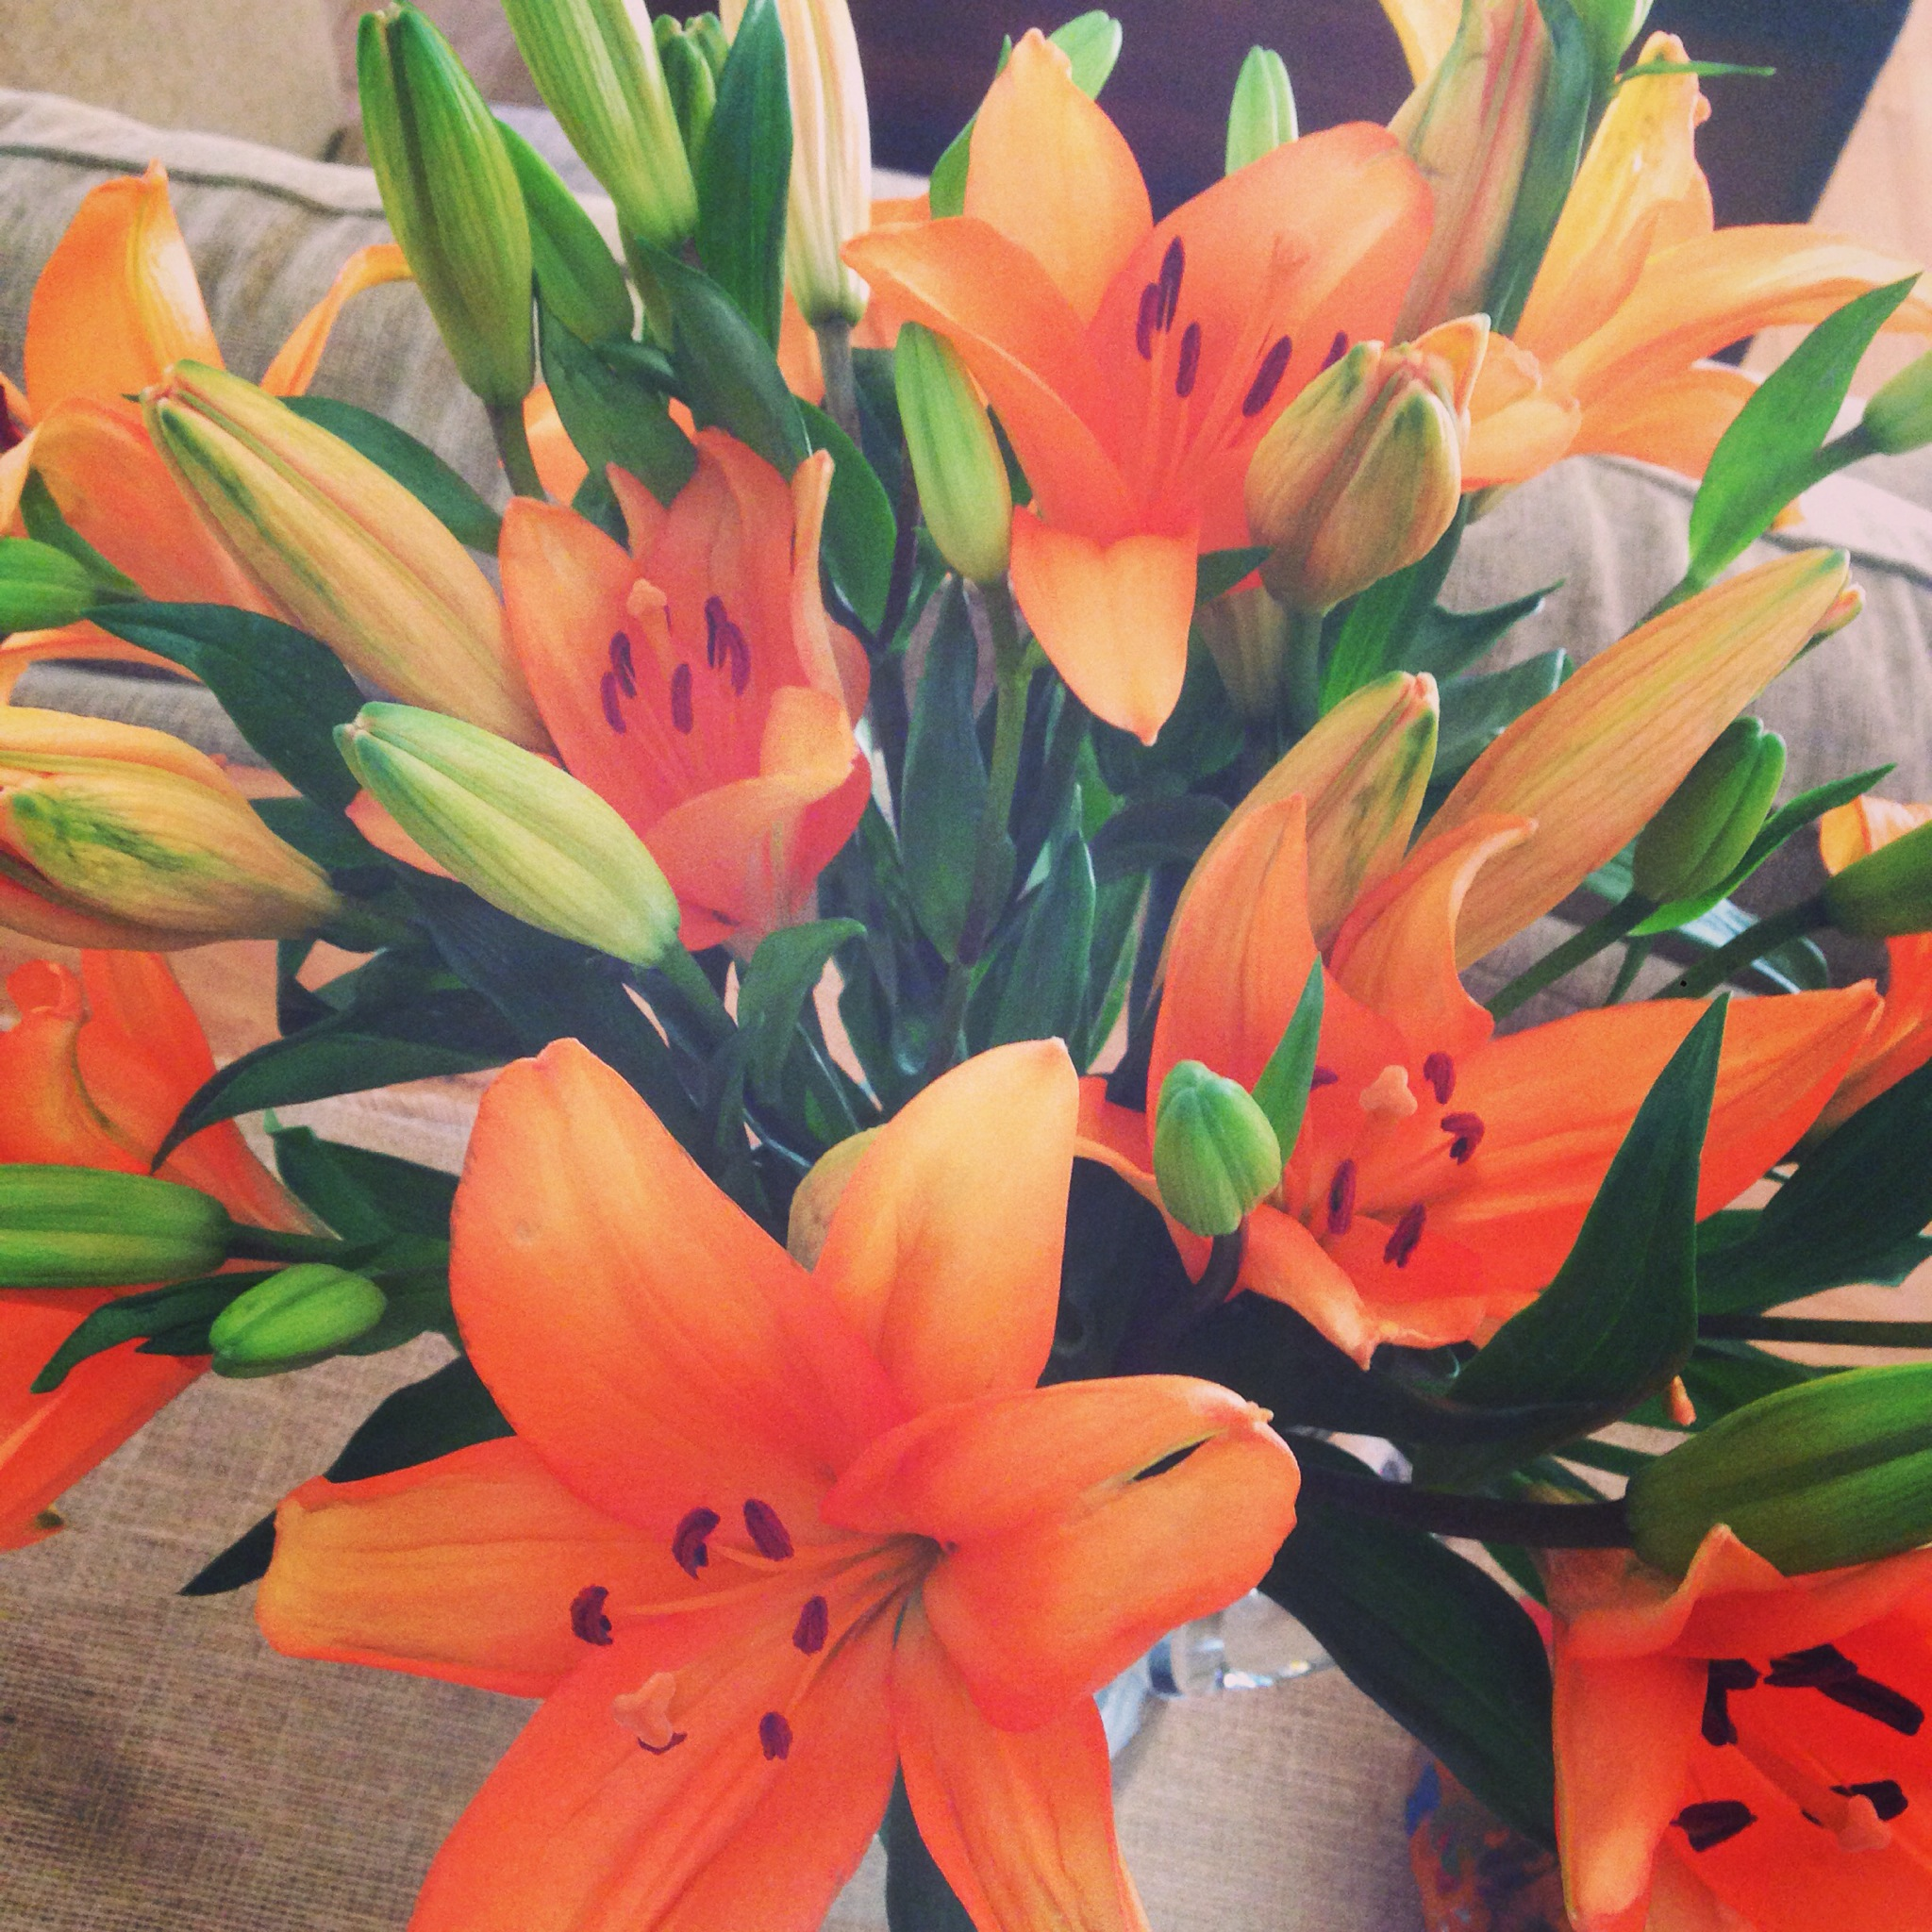 The Bouqs Fresh flowers Delivered The New Modern Momma